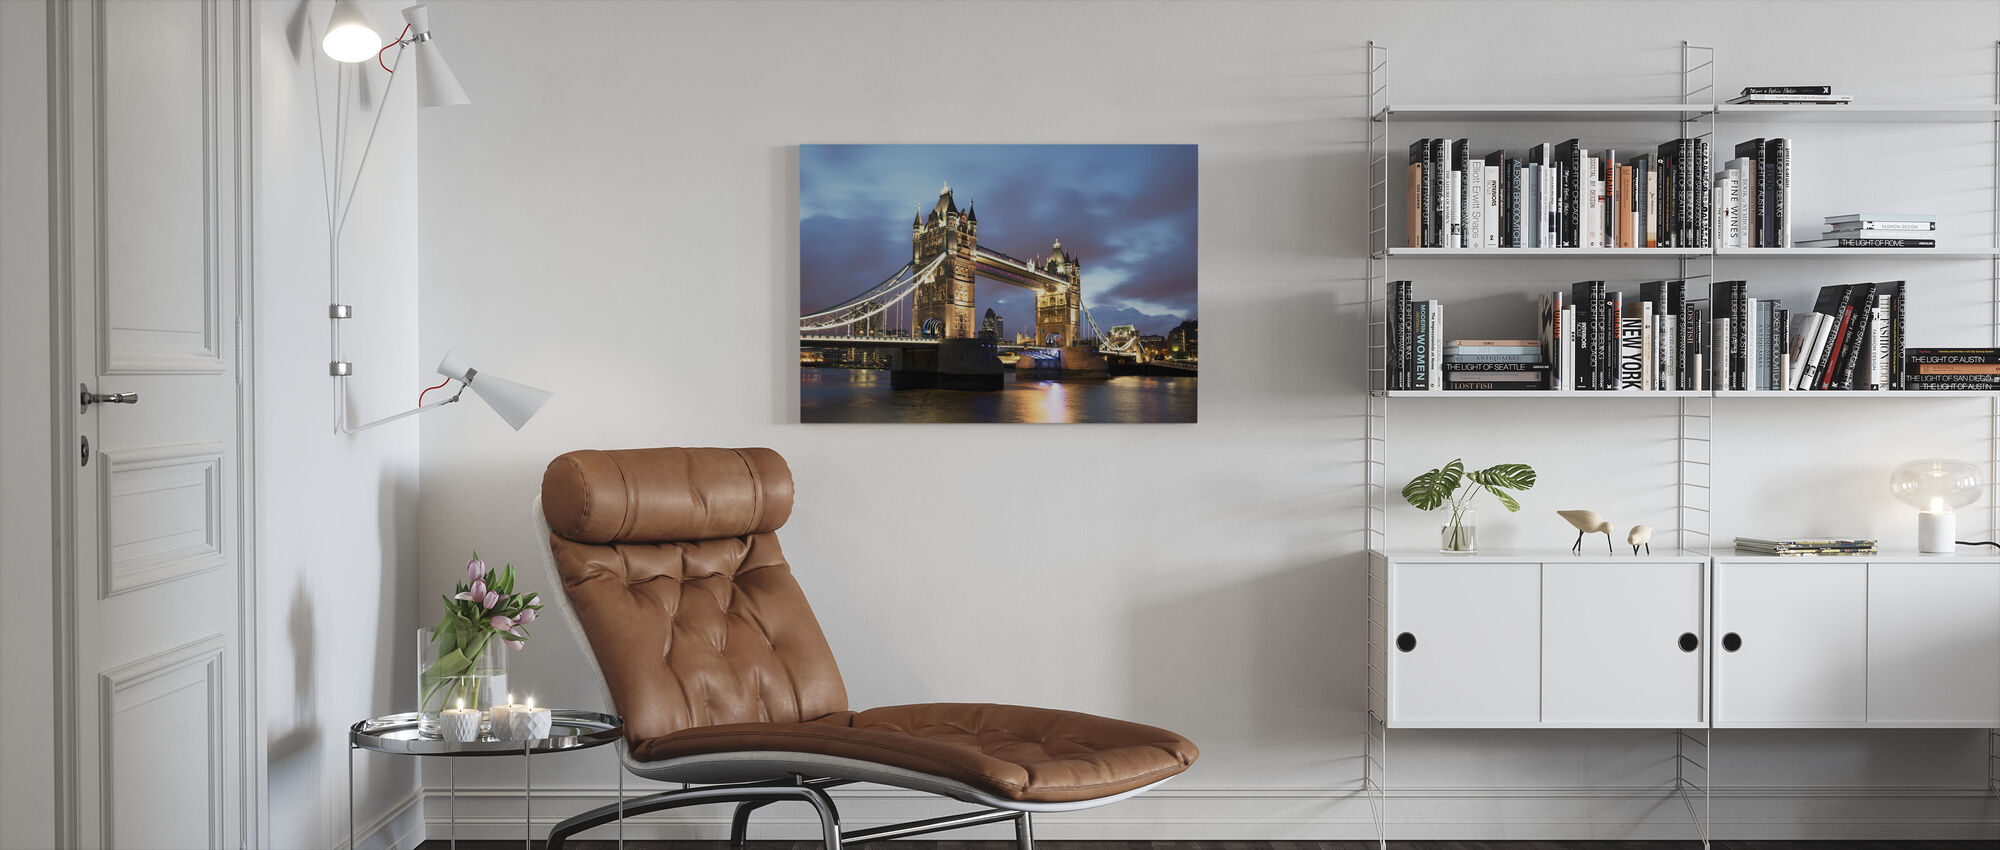 Iconic Bridge - Canvas print - Living Room